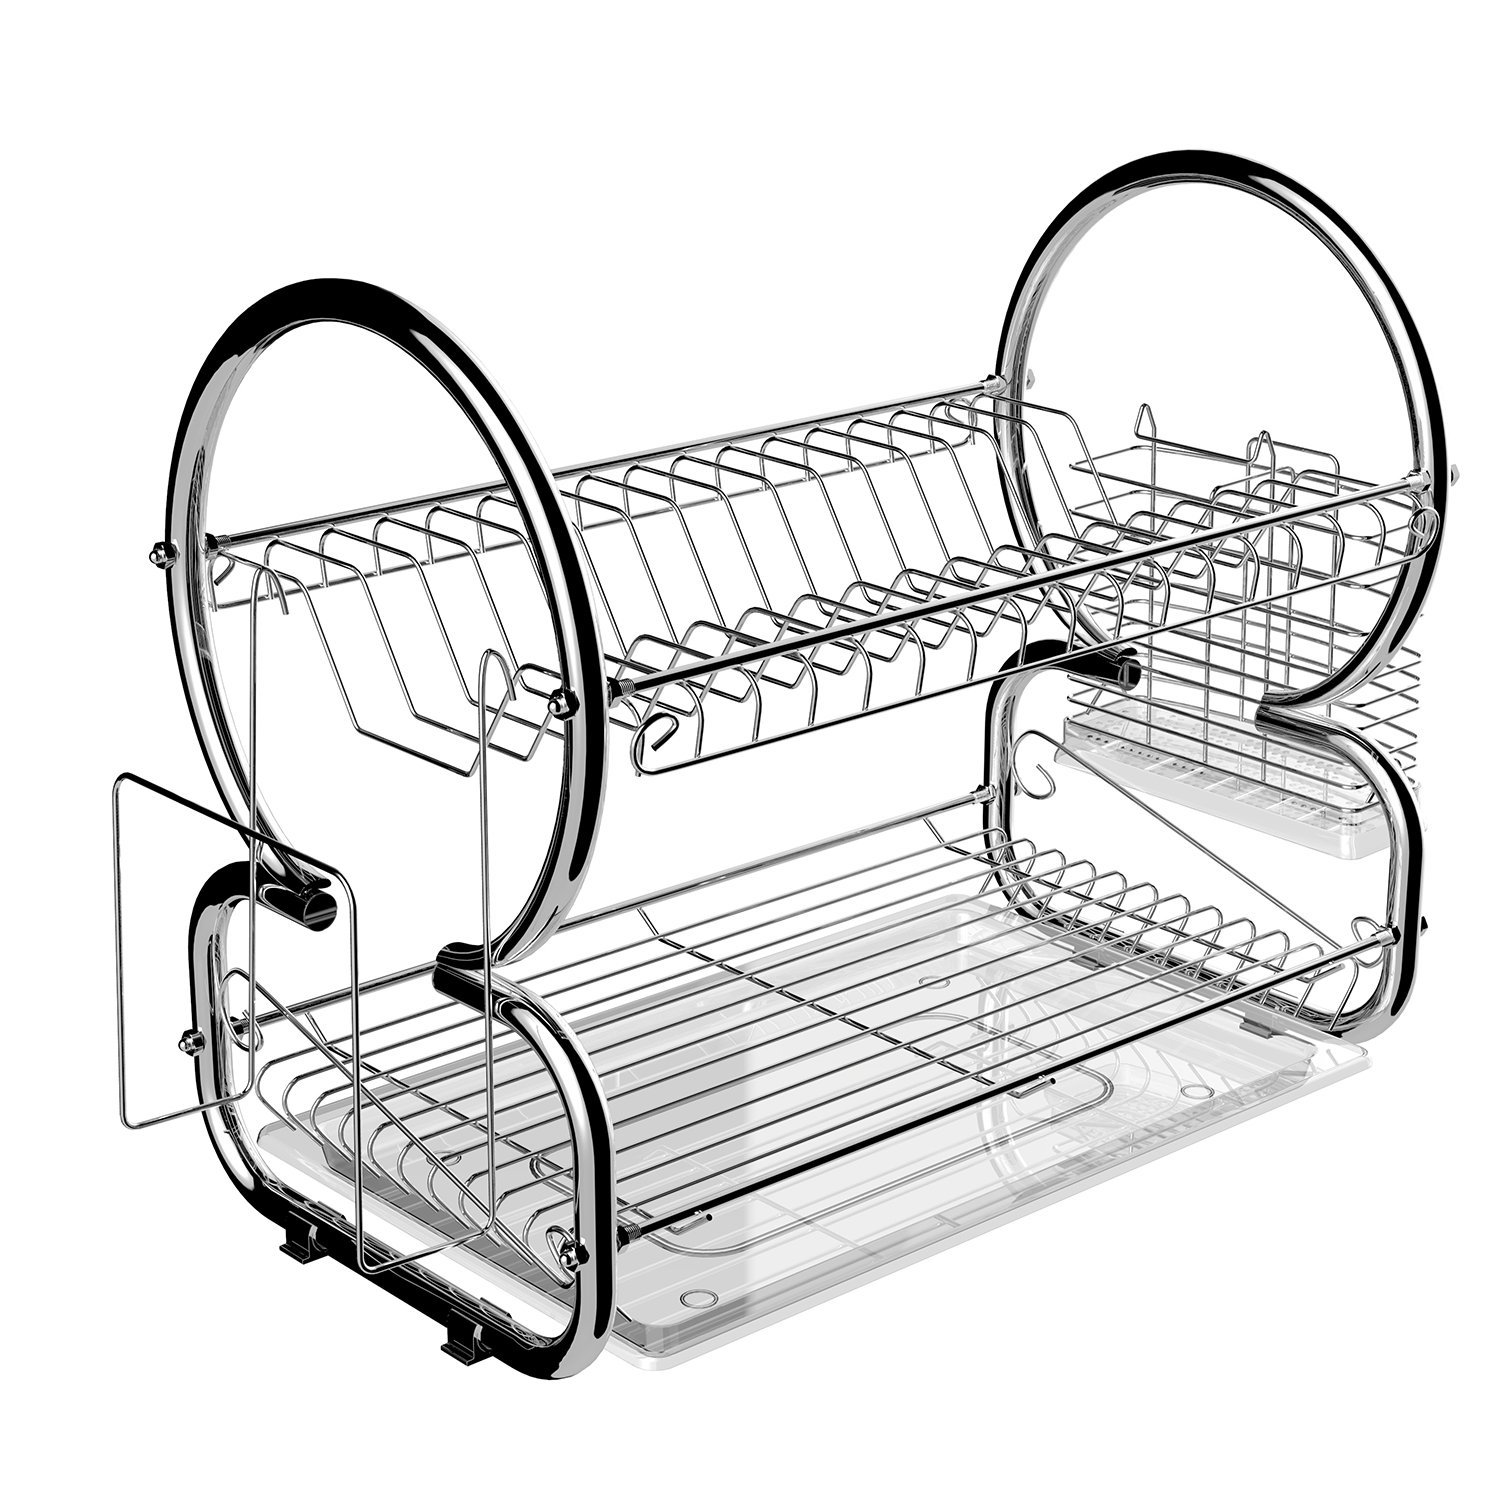 Stainless Steel 2 Tier Dish Rack Kitchen Cup Drainer Rack With Removable Plastic Drainboard (Sliver)